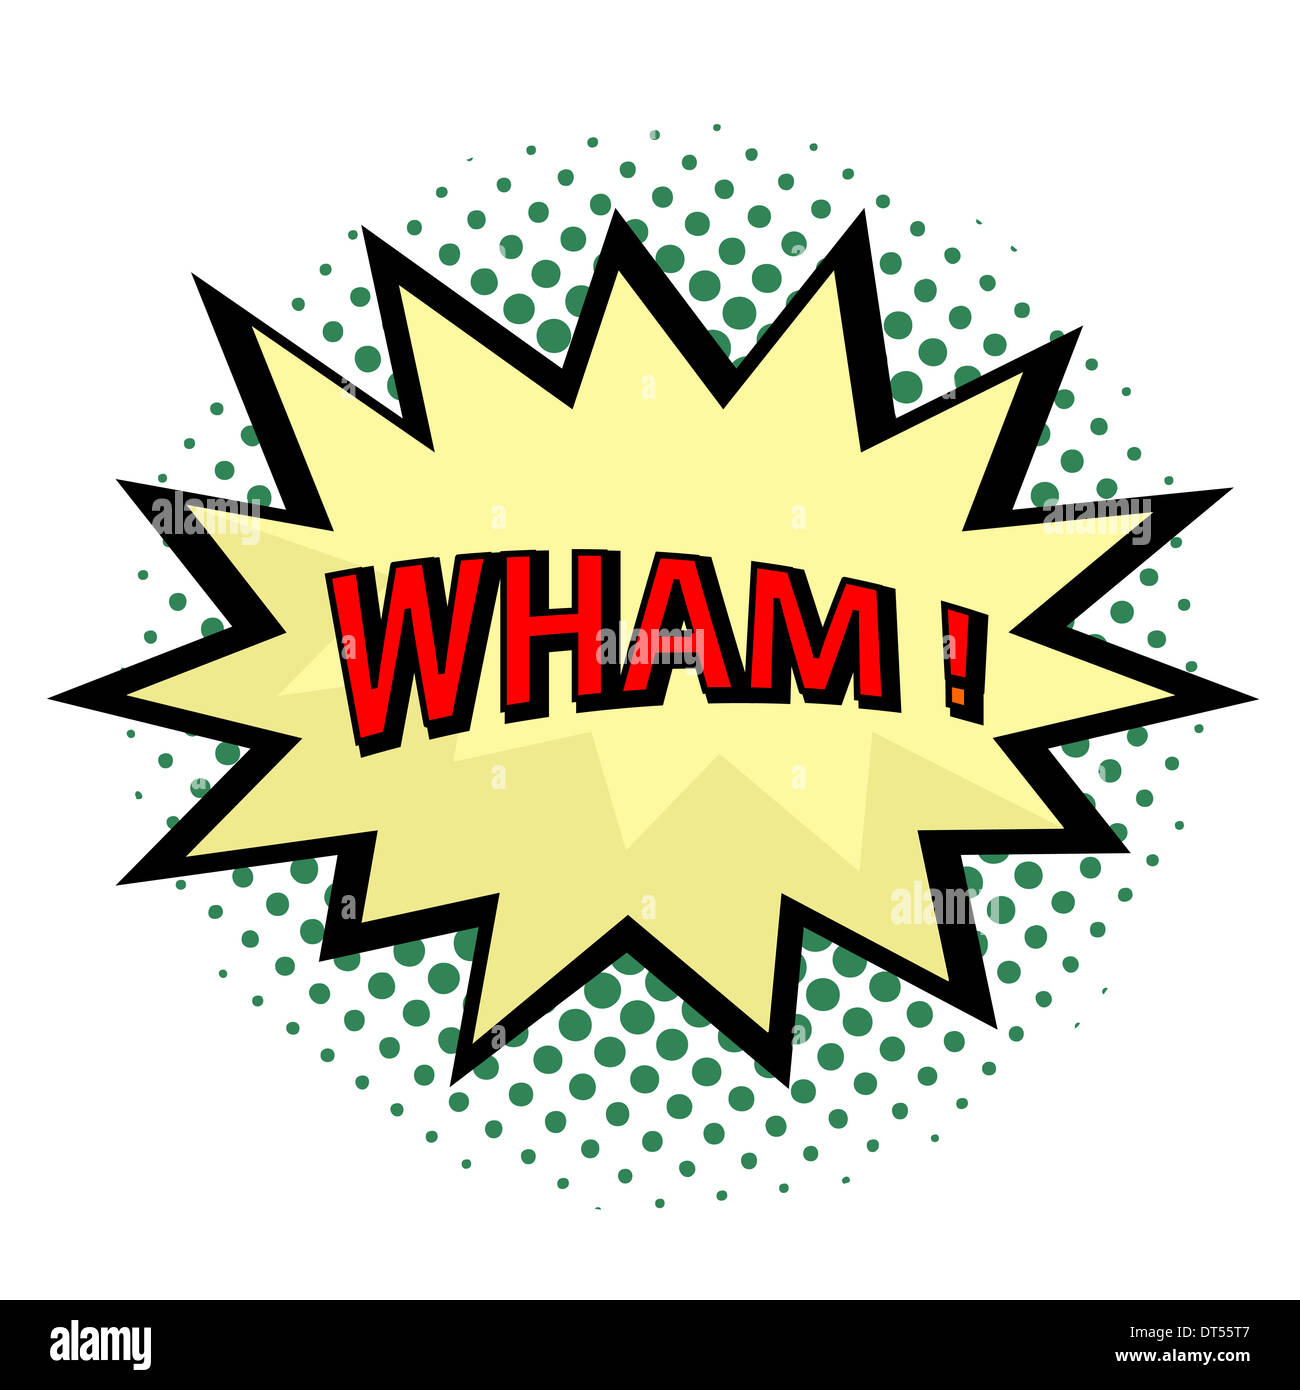 Wham! comic cloud in pop art style - Stock Image